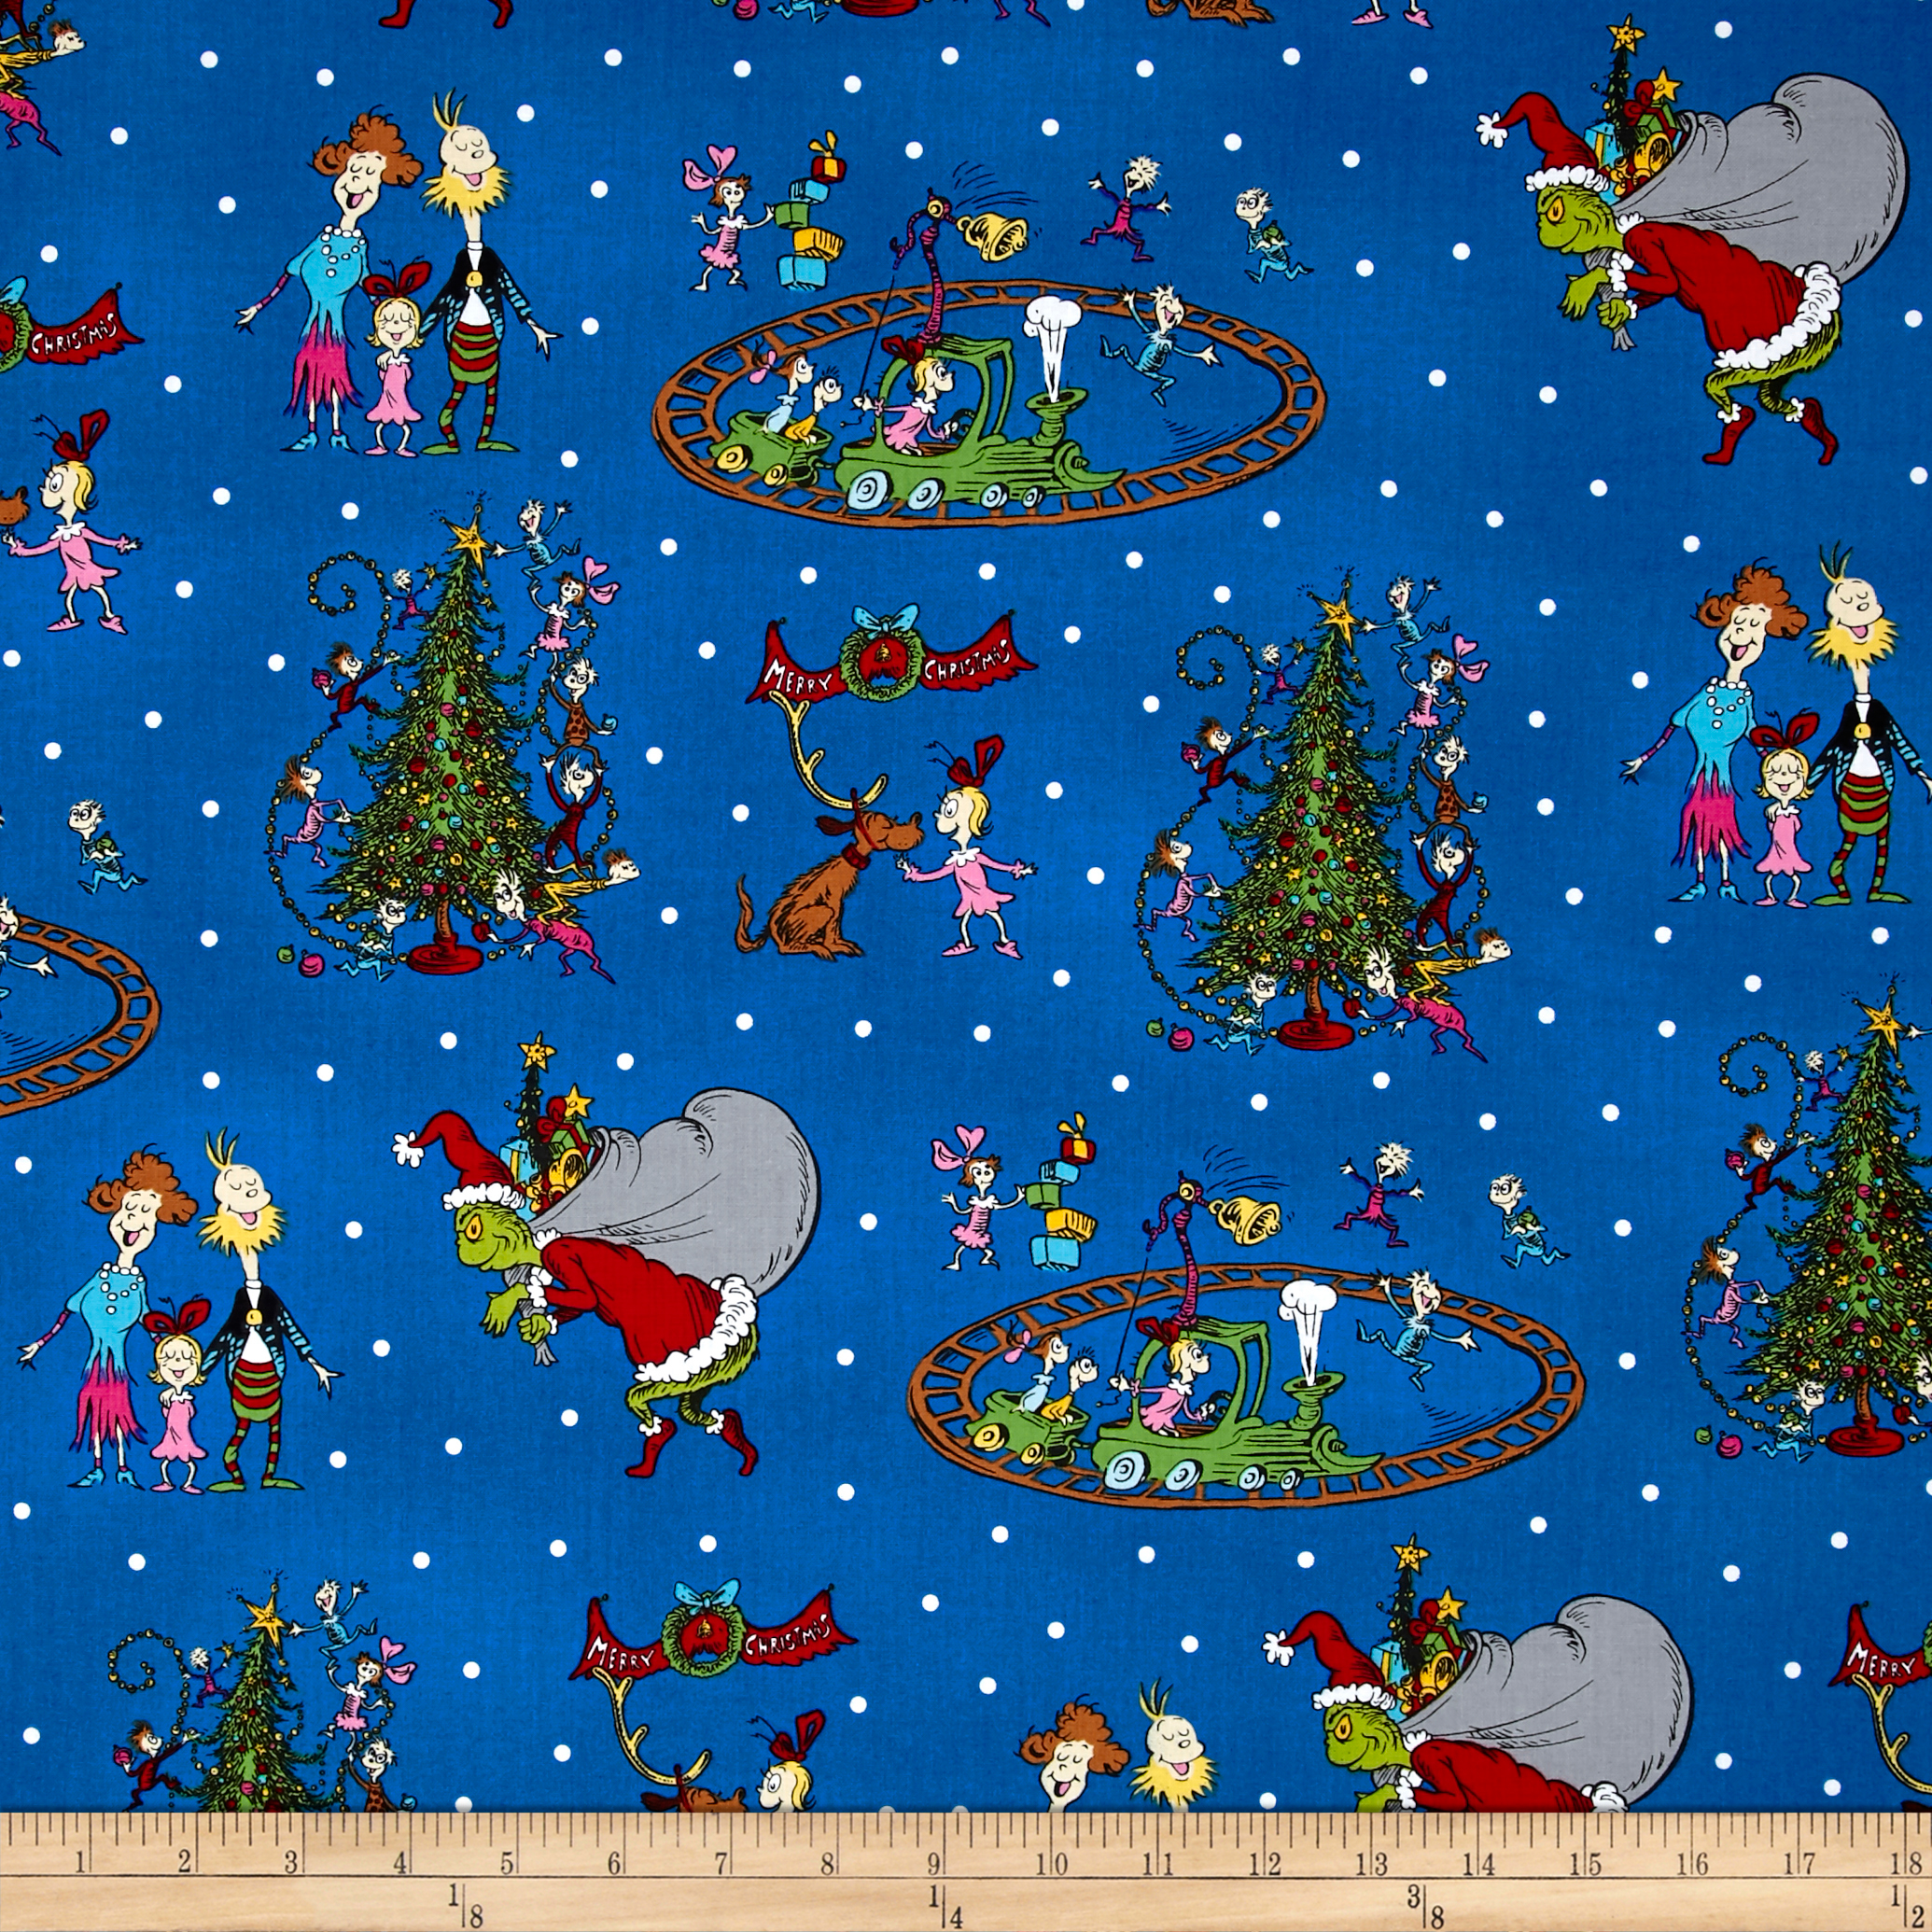 How The Grinch Stole Christmas Grinch Collage Blue Fabric By The Yard